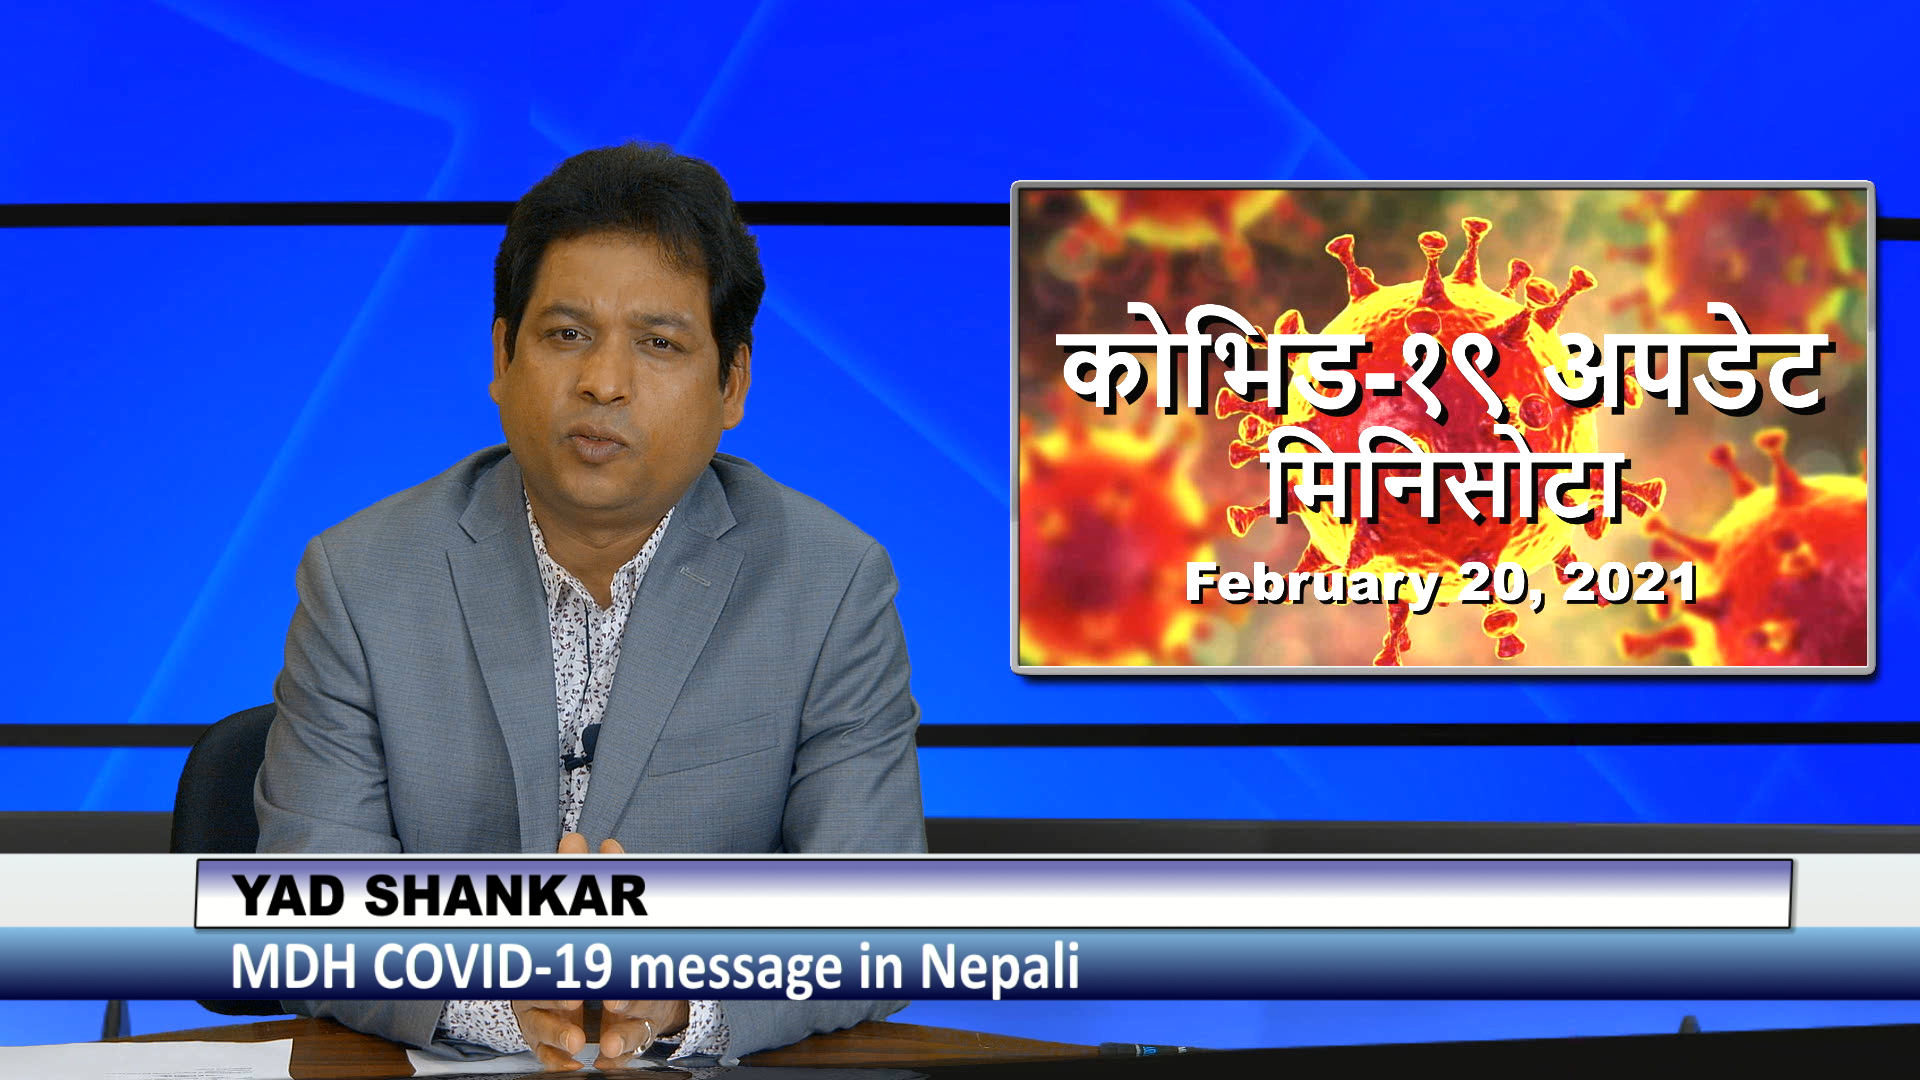 3HMONGTV HELPS BHUTANESE COMMUNITY WITH COVID-19 MESSAGING